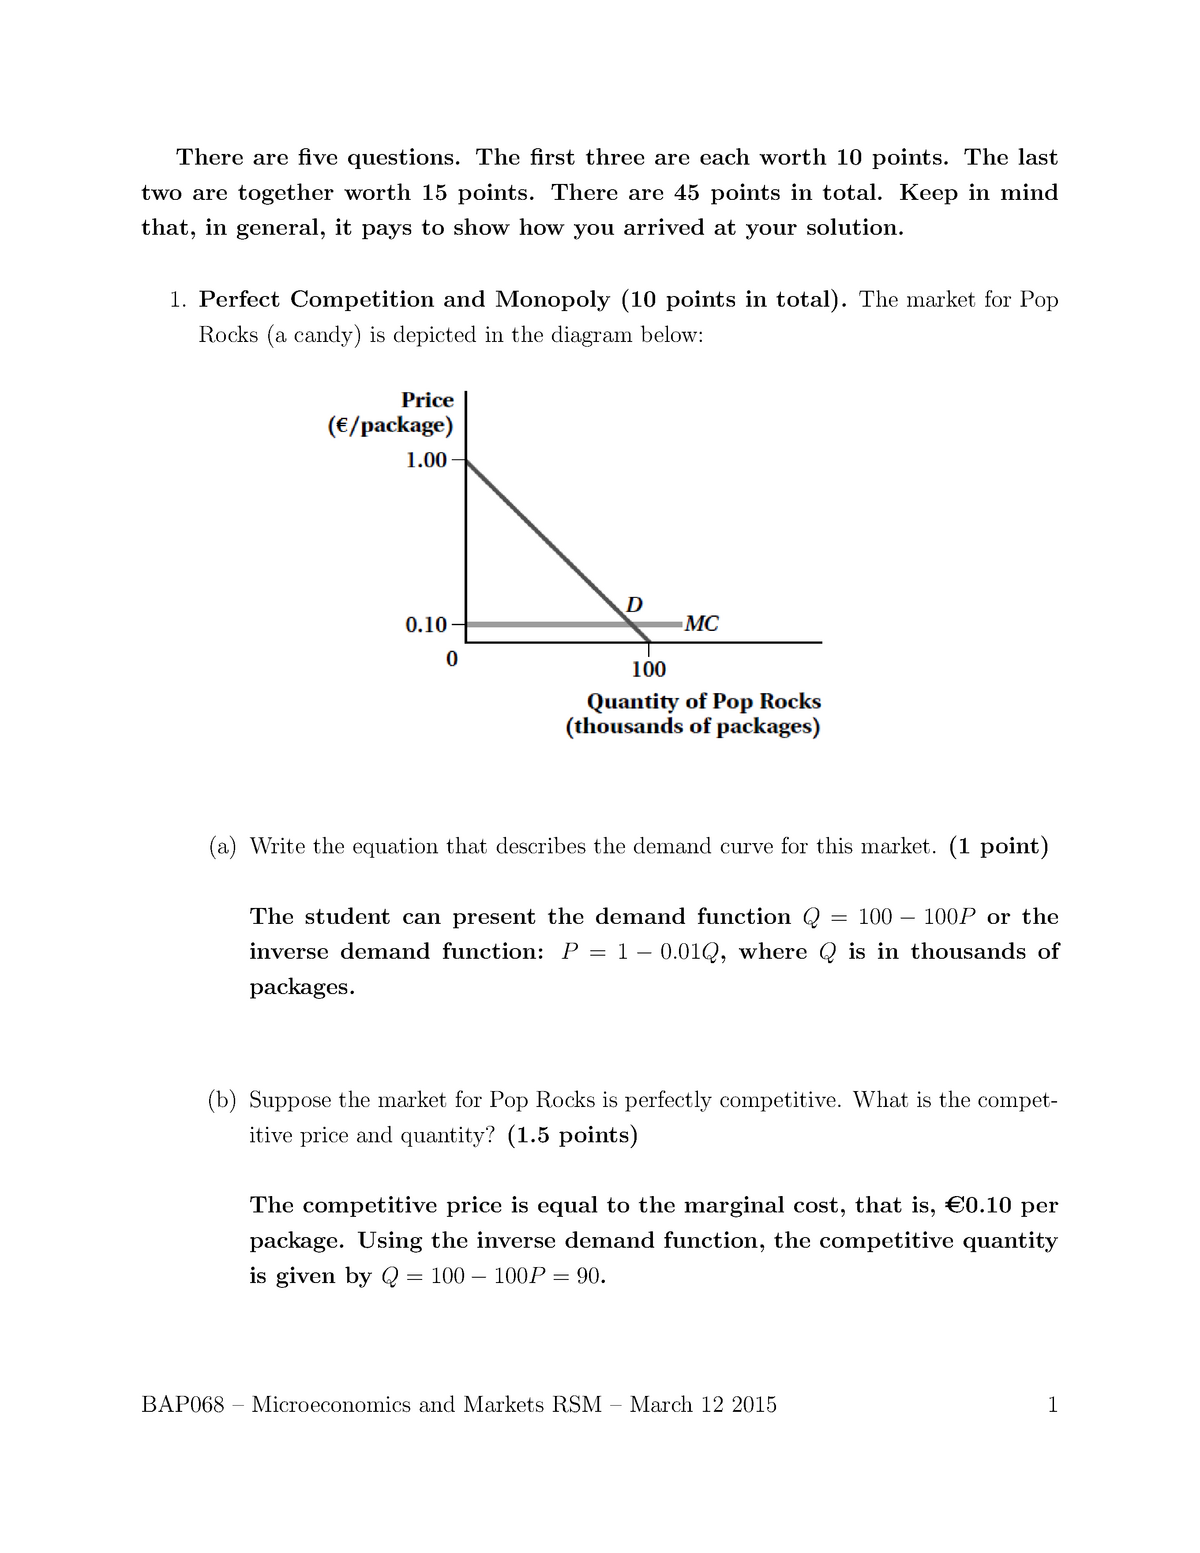 Exam 12 March 2015, questions and answers - BAP068 - EUR